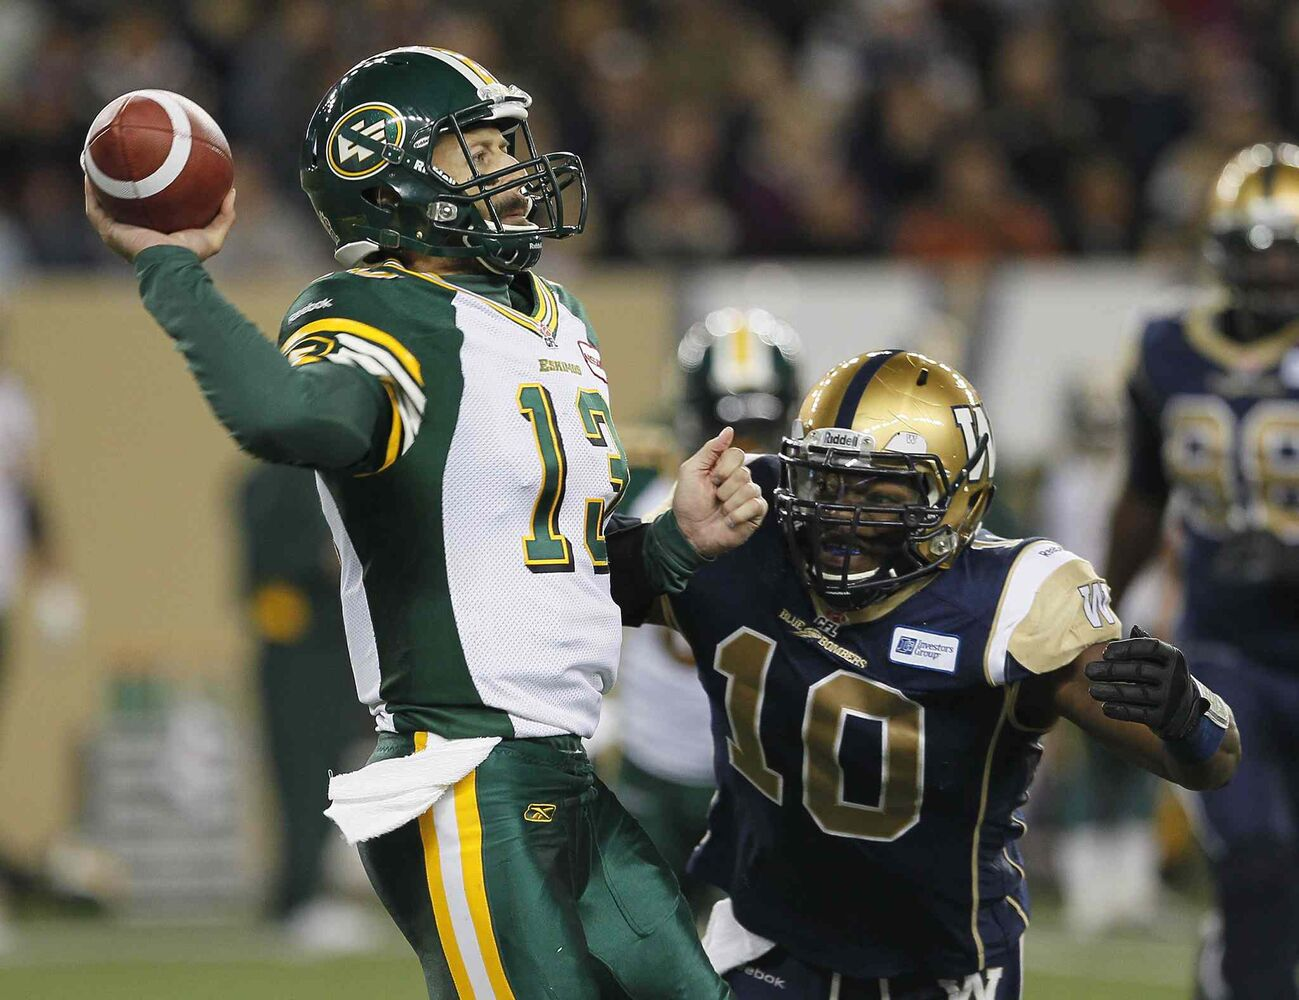 Edmonton Eskimos' quarterback Mike Reilly (left) gets a pass away under pressure from Winnipeg Blue Bombers' Henoc Muamba. (John Woods / The Canadian Press)